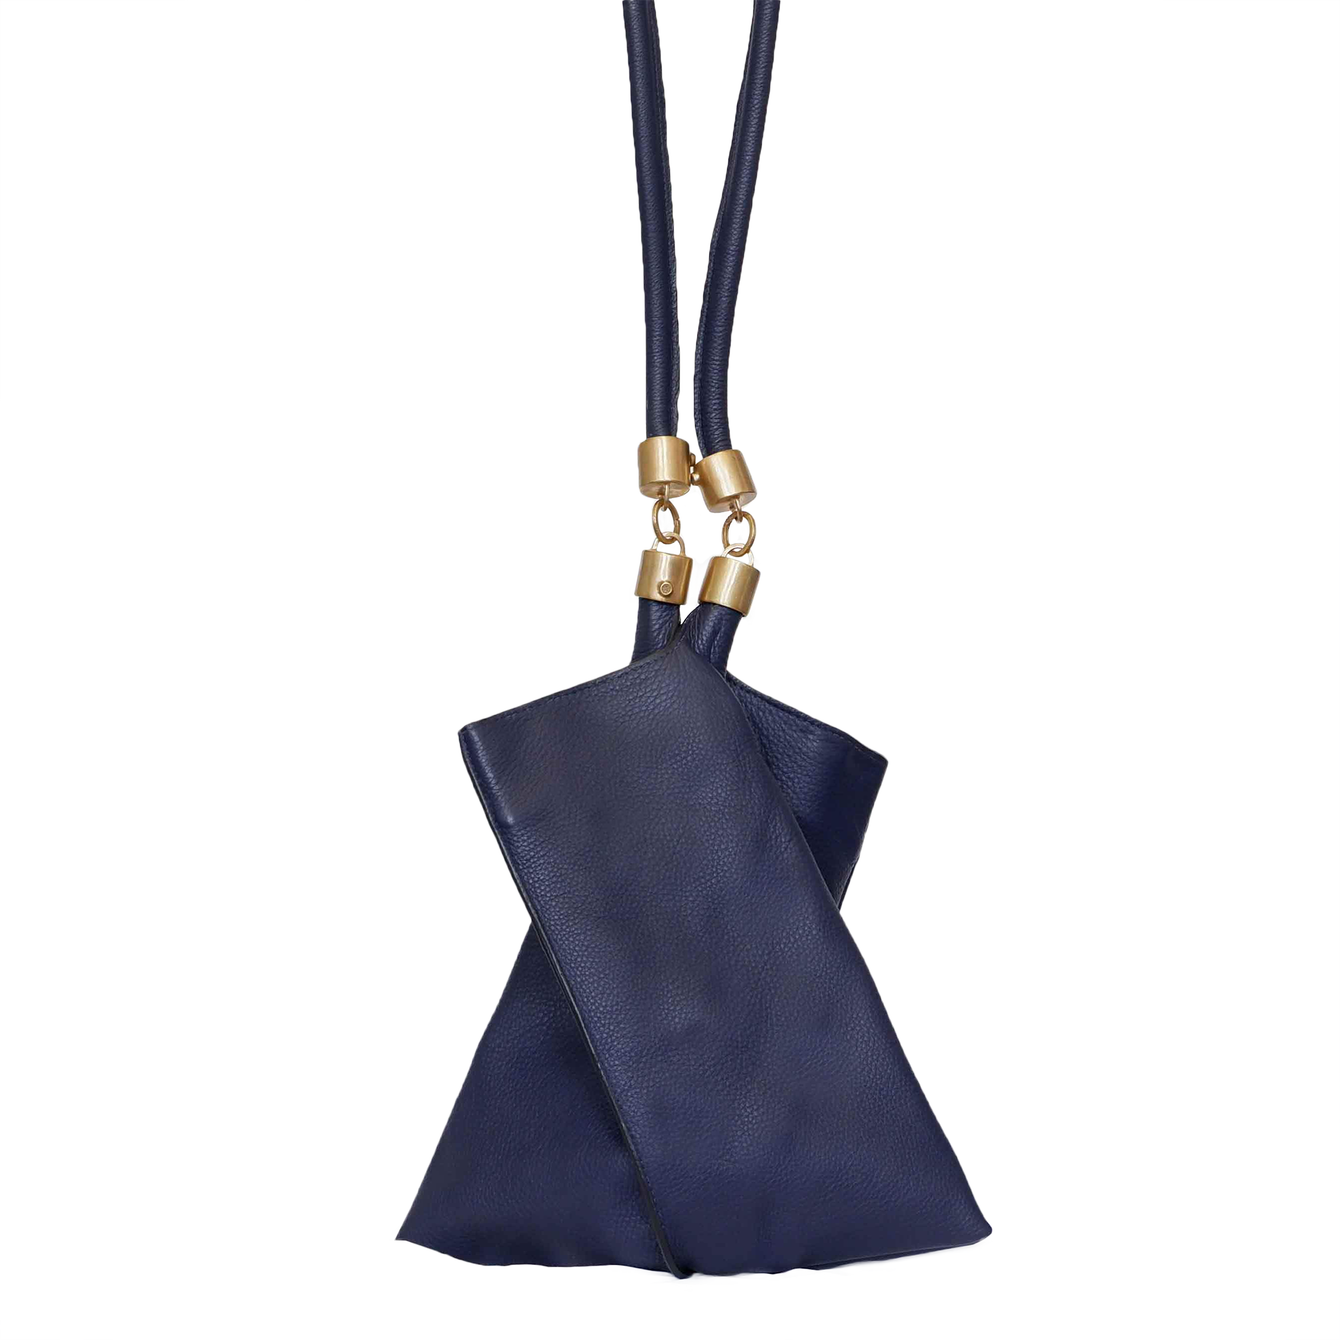 Genuine Leather Origami Tote Bag in Navy Blue-Women - Accessories - Handbags + Totes-ALLISON MITCHELL-Peccadilly